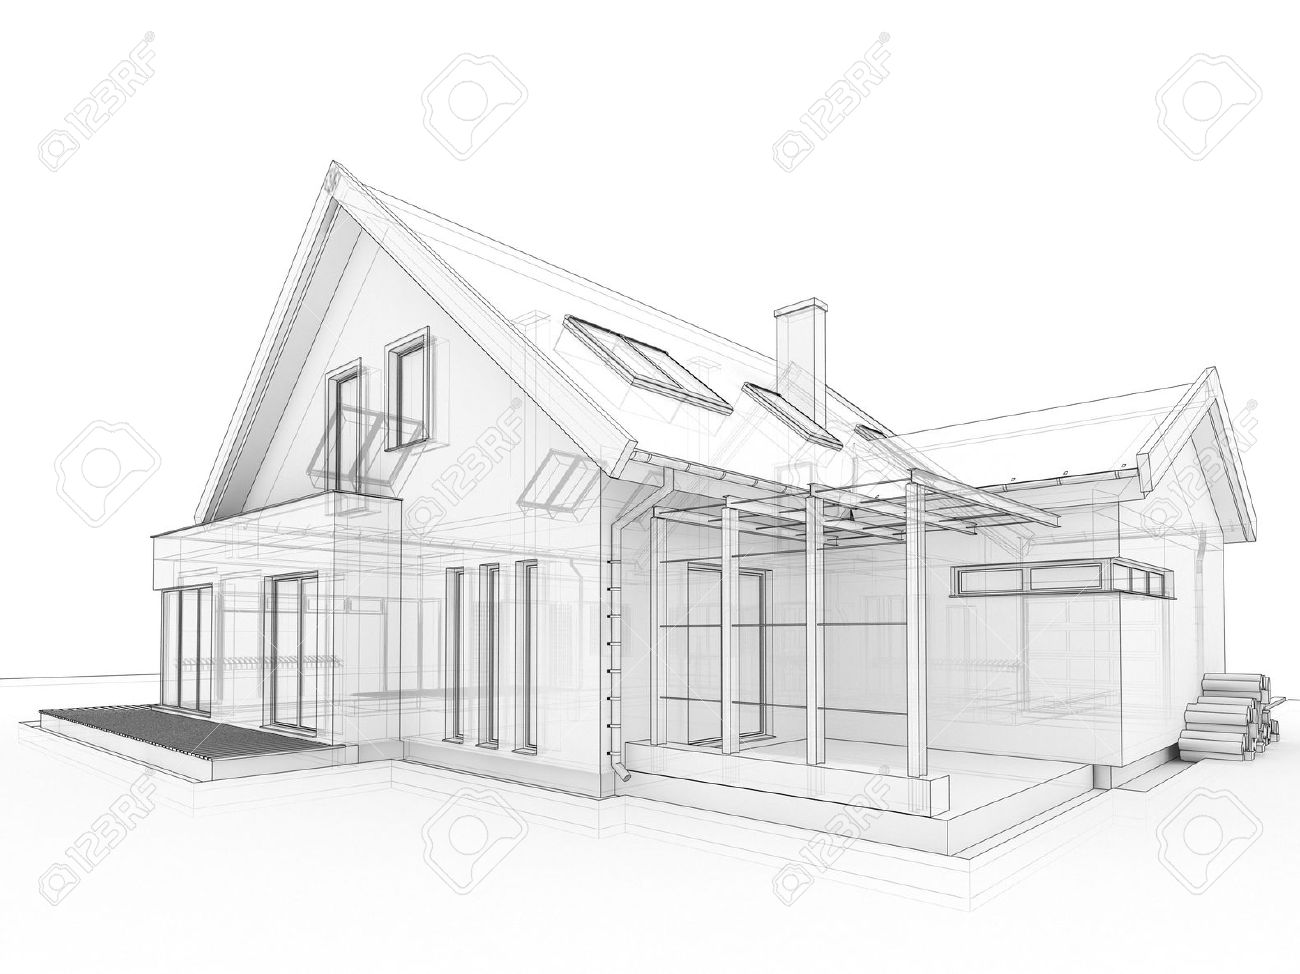 Computer Generated, Transparent House Design Visualization In Drawing Style  Stock Photo   16153168